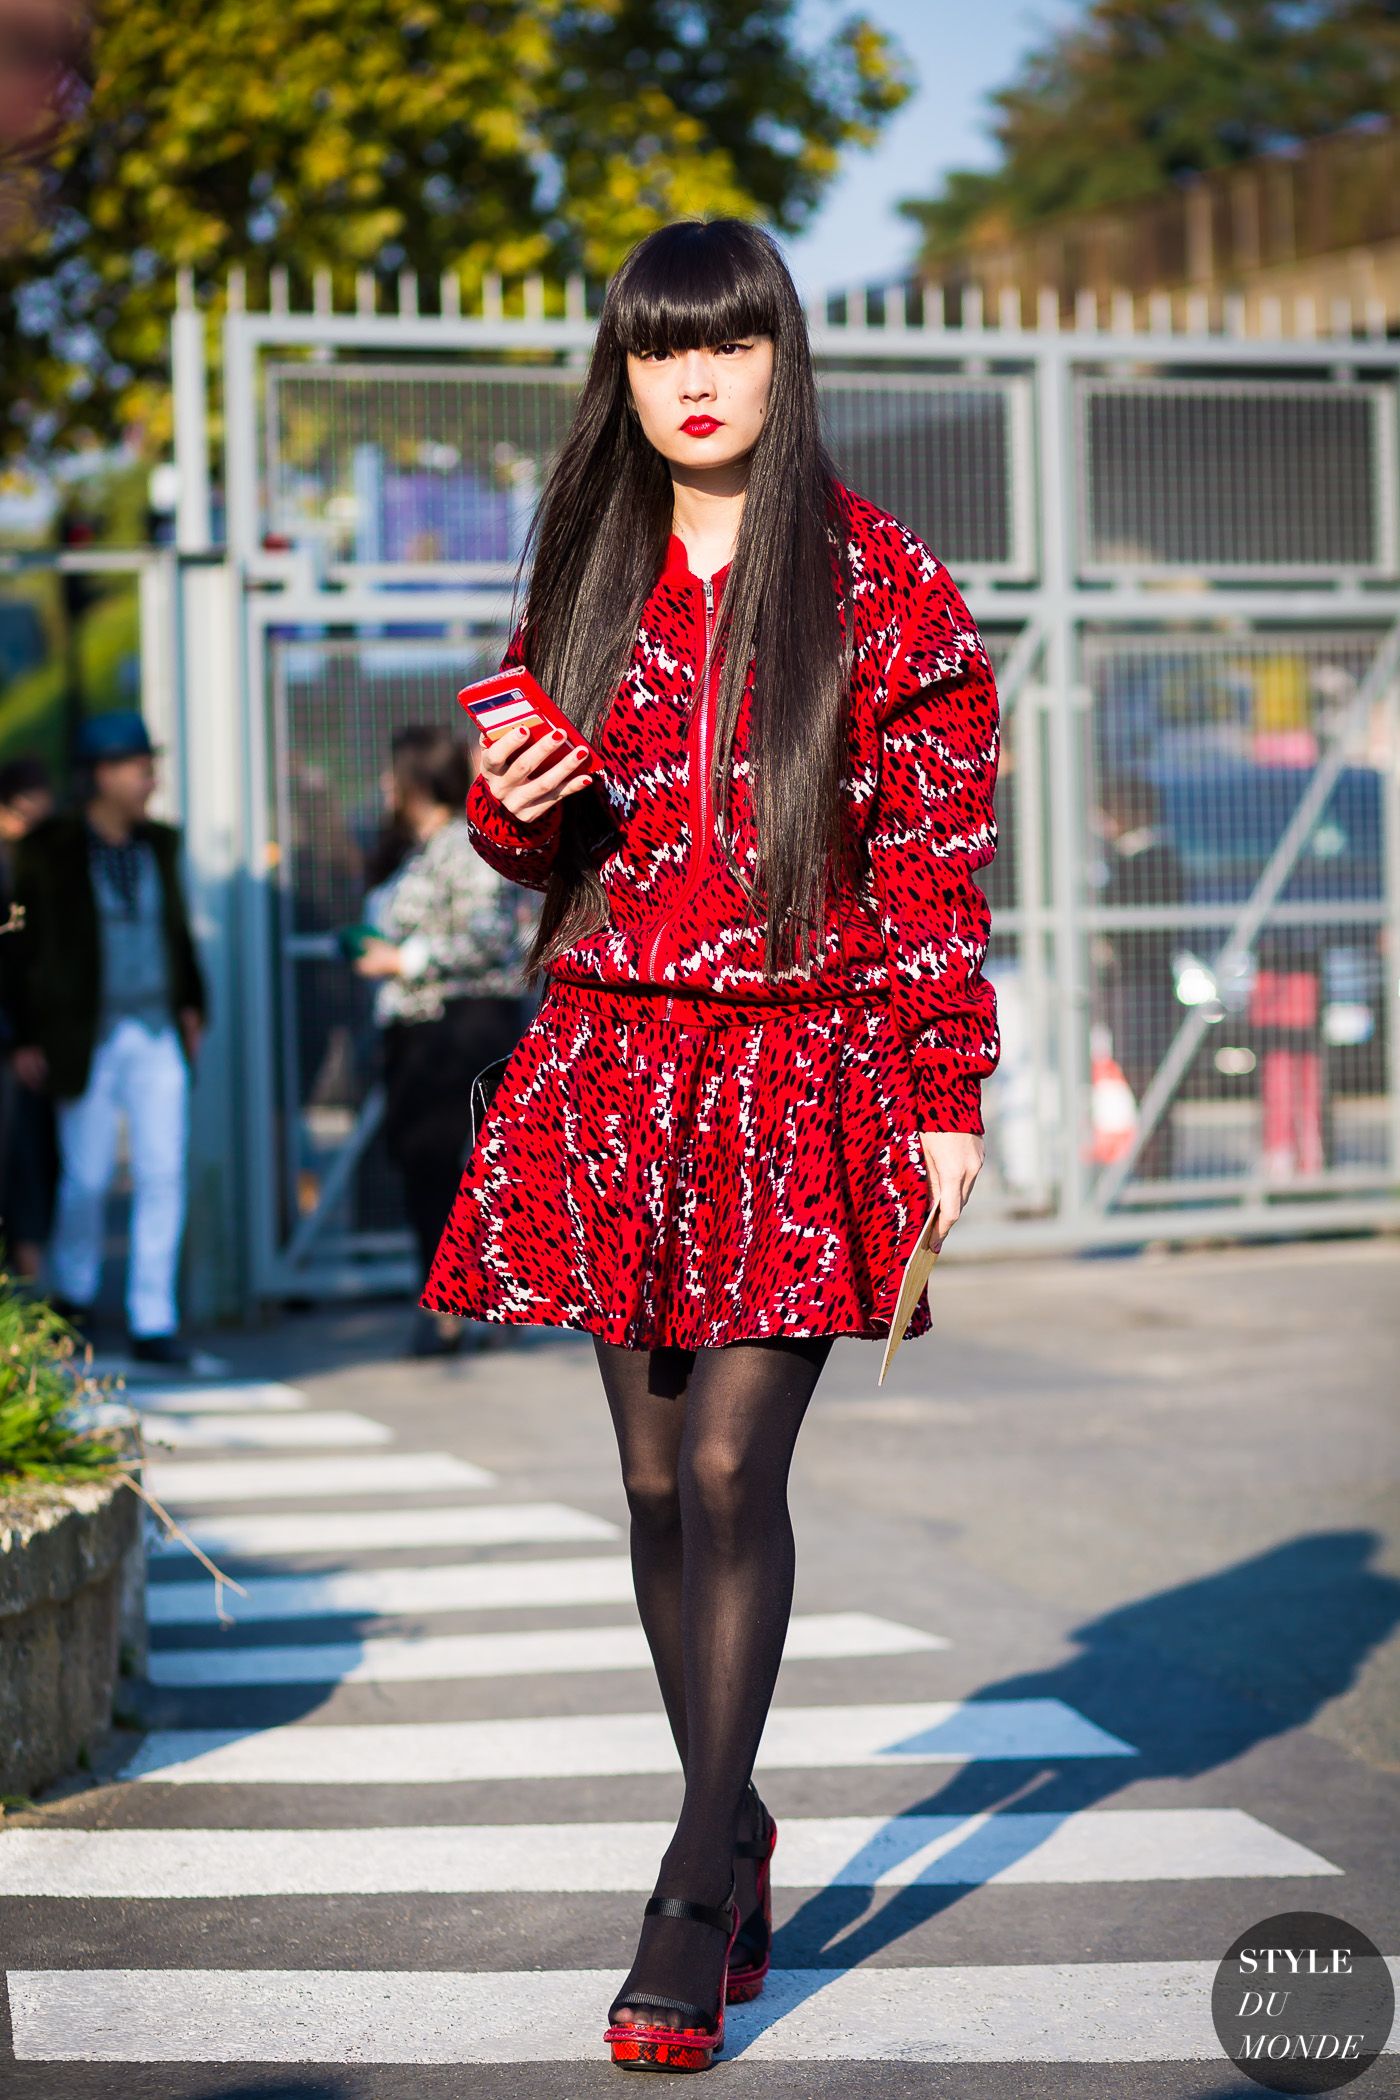 Kozue Akimoto Street Style Street Fashion Streetsnaps by STYLEDUMONDE Street Style Fashion Photography